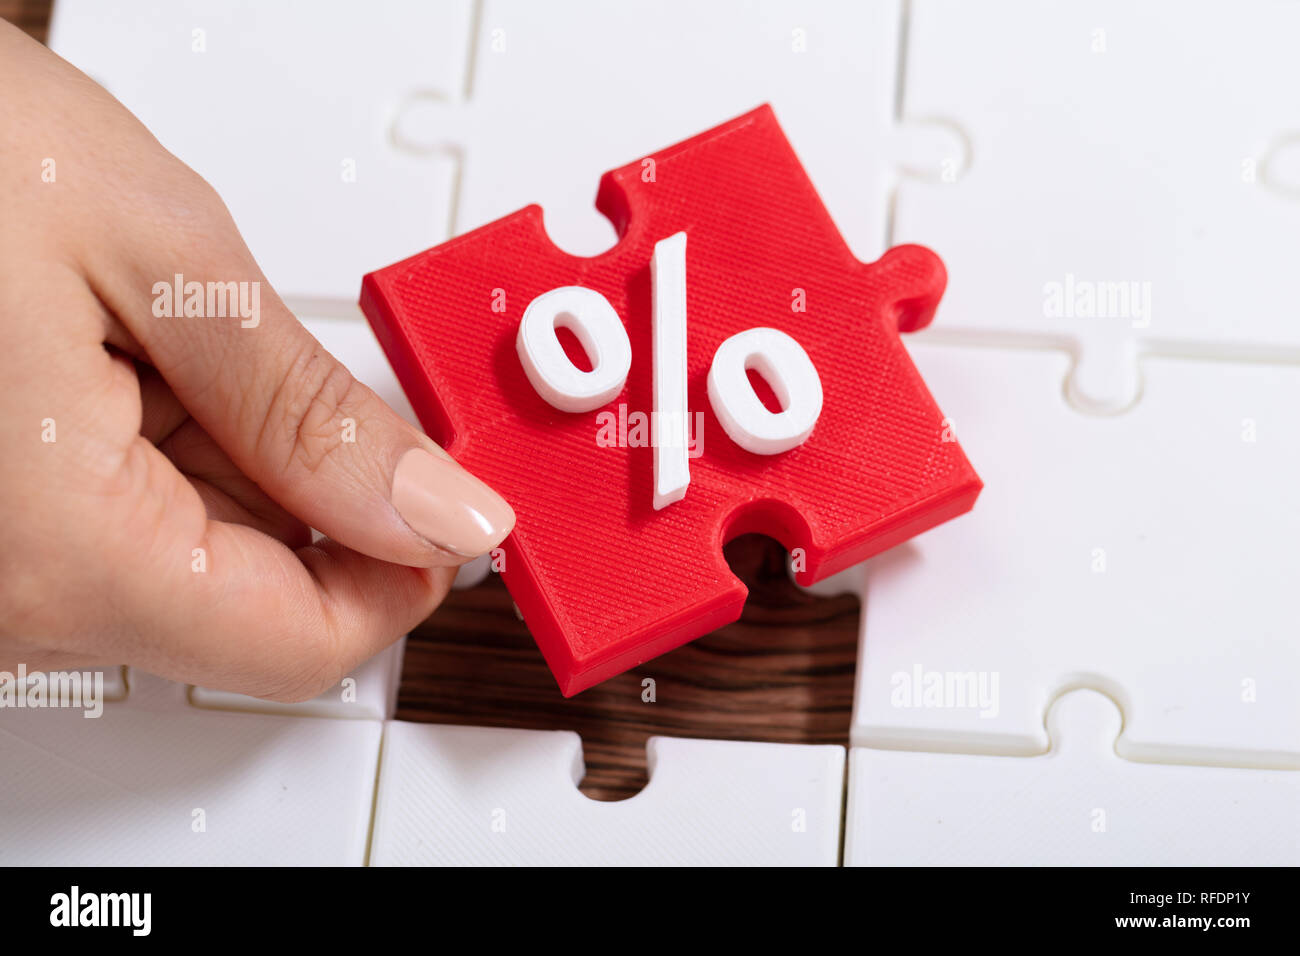 An Overhead View Of Hand Holding Red Jigsaw Puzzle With White Percentage Symbol - Stock Image